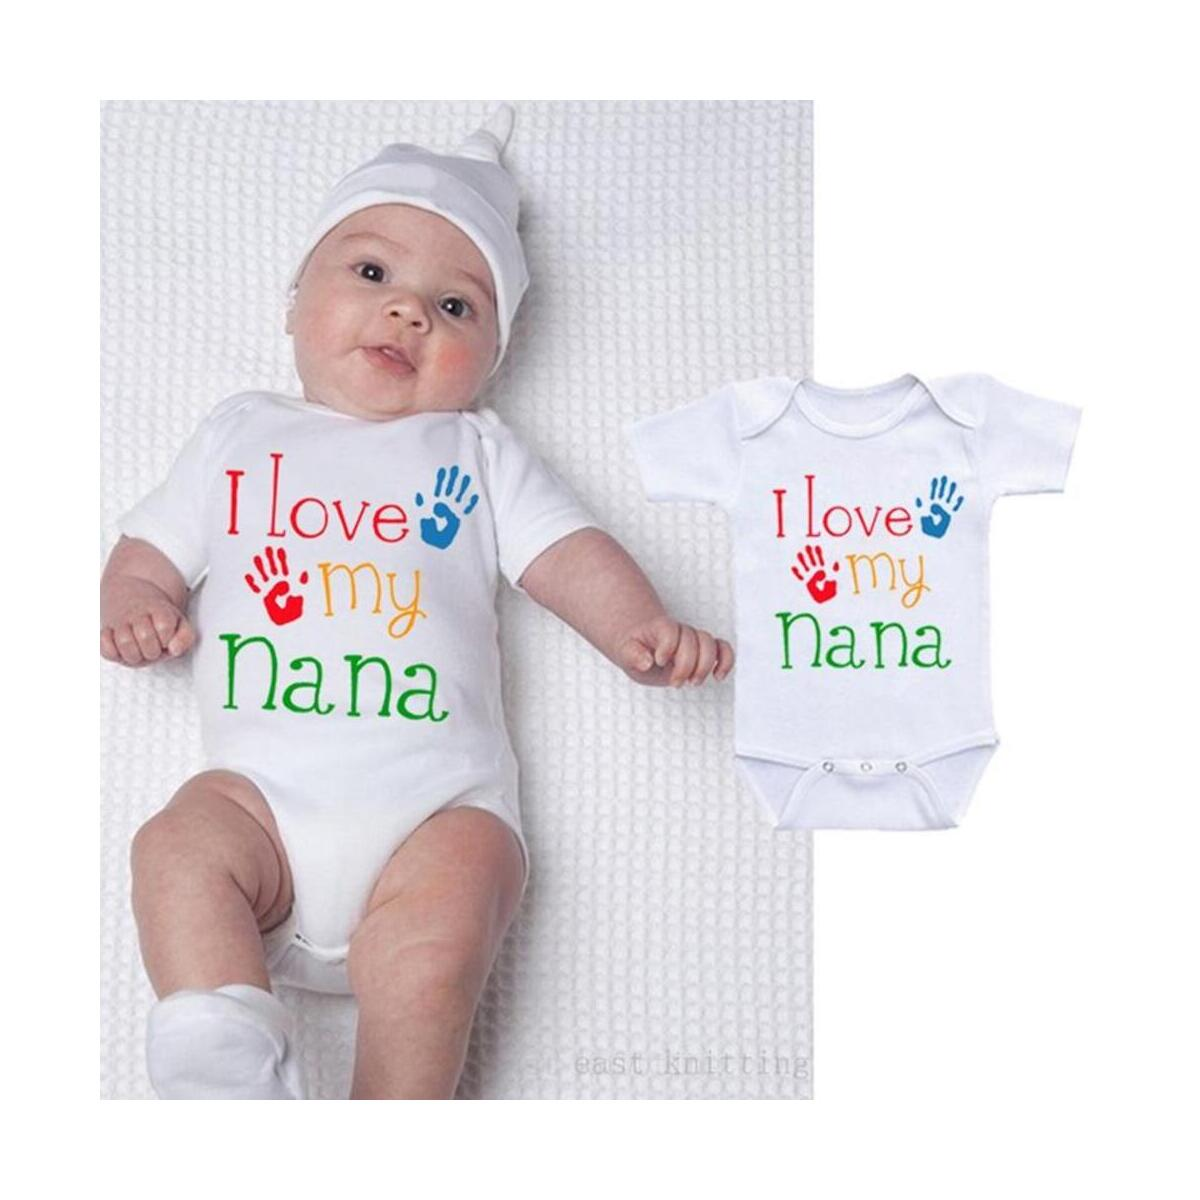 I Love My Nana Best Shower Gift Cute Fun Message Funny Baby Bodysuit Onesie Infant